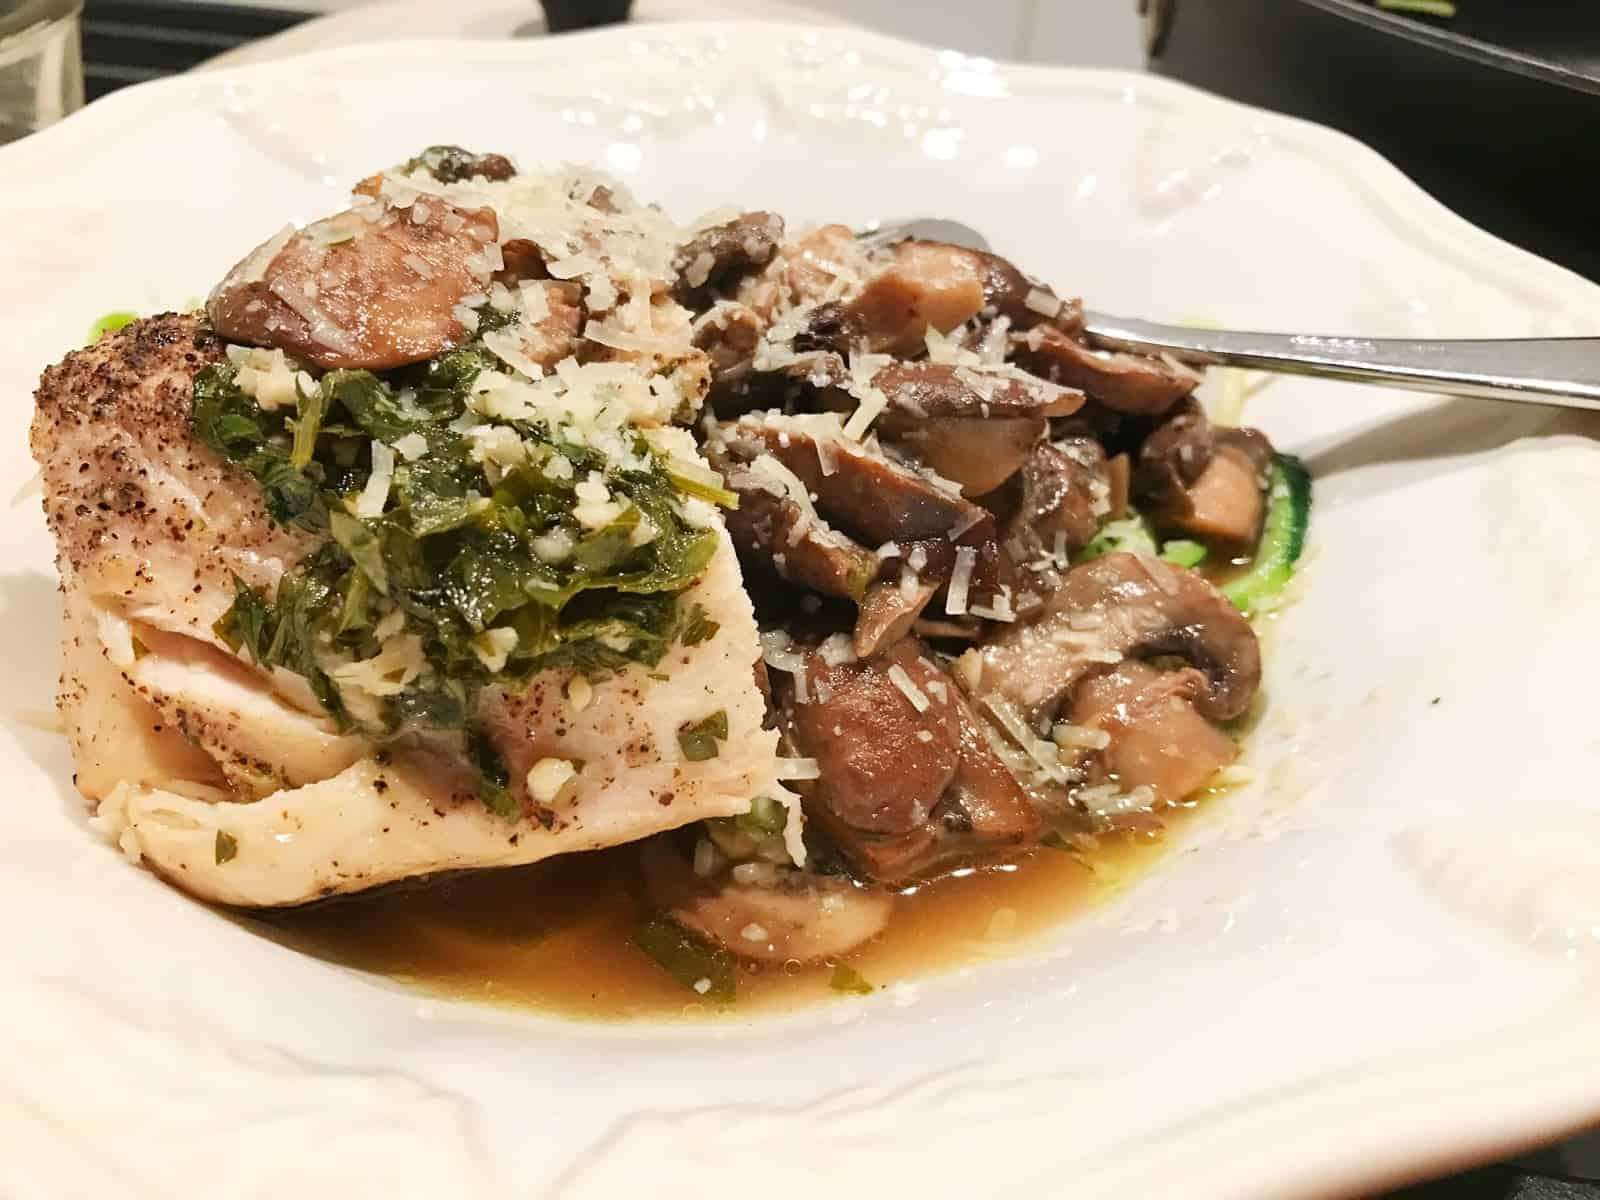 Chicken with Mushrooms and Parsley Sauce